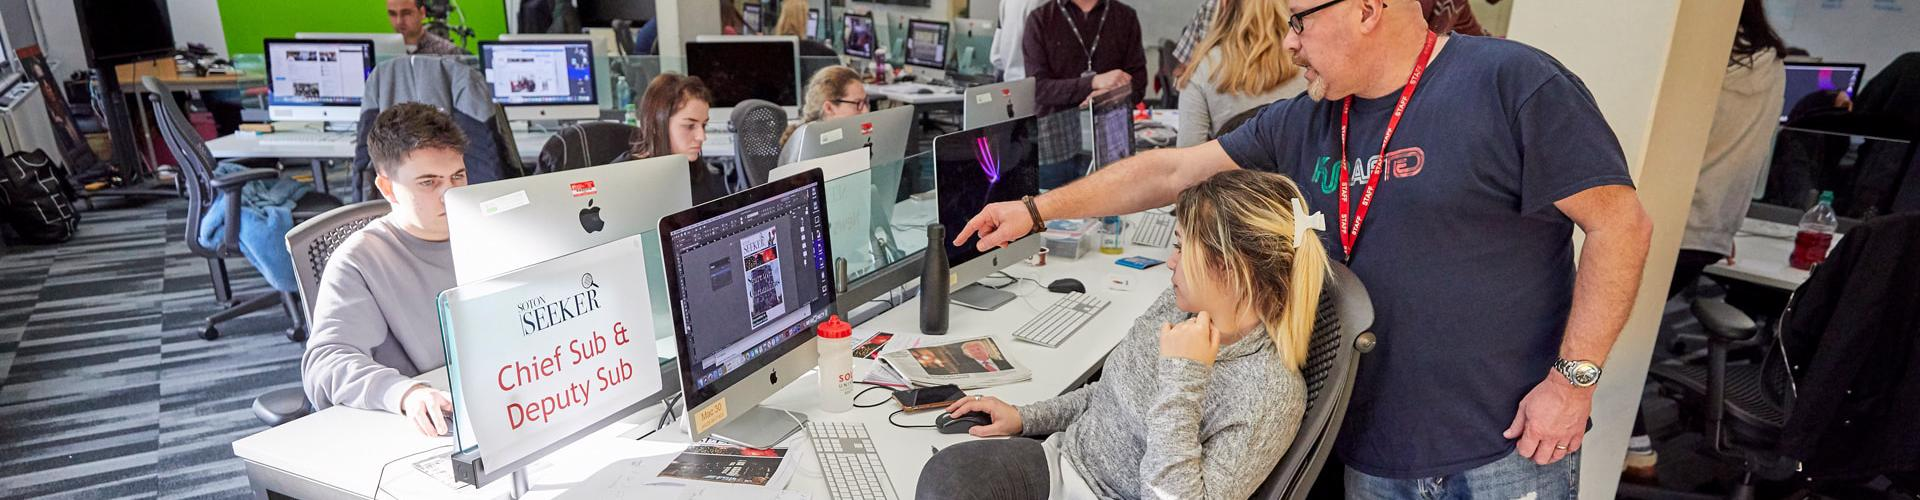 News day for journalism students at Solent University